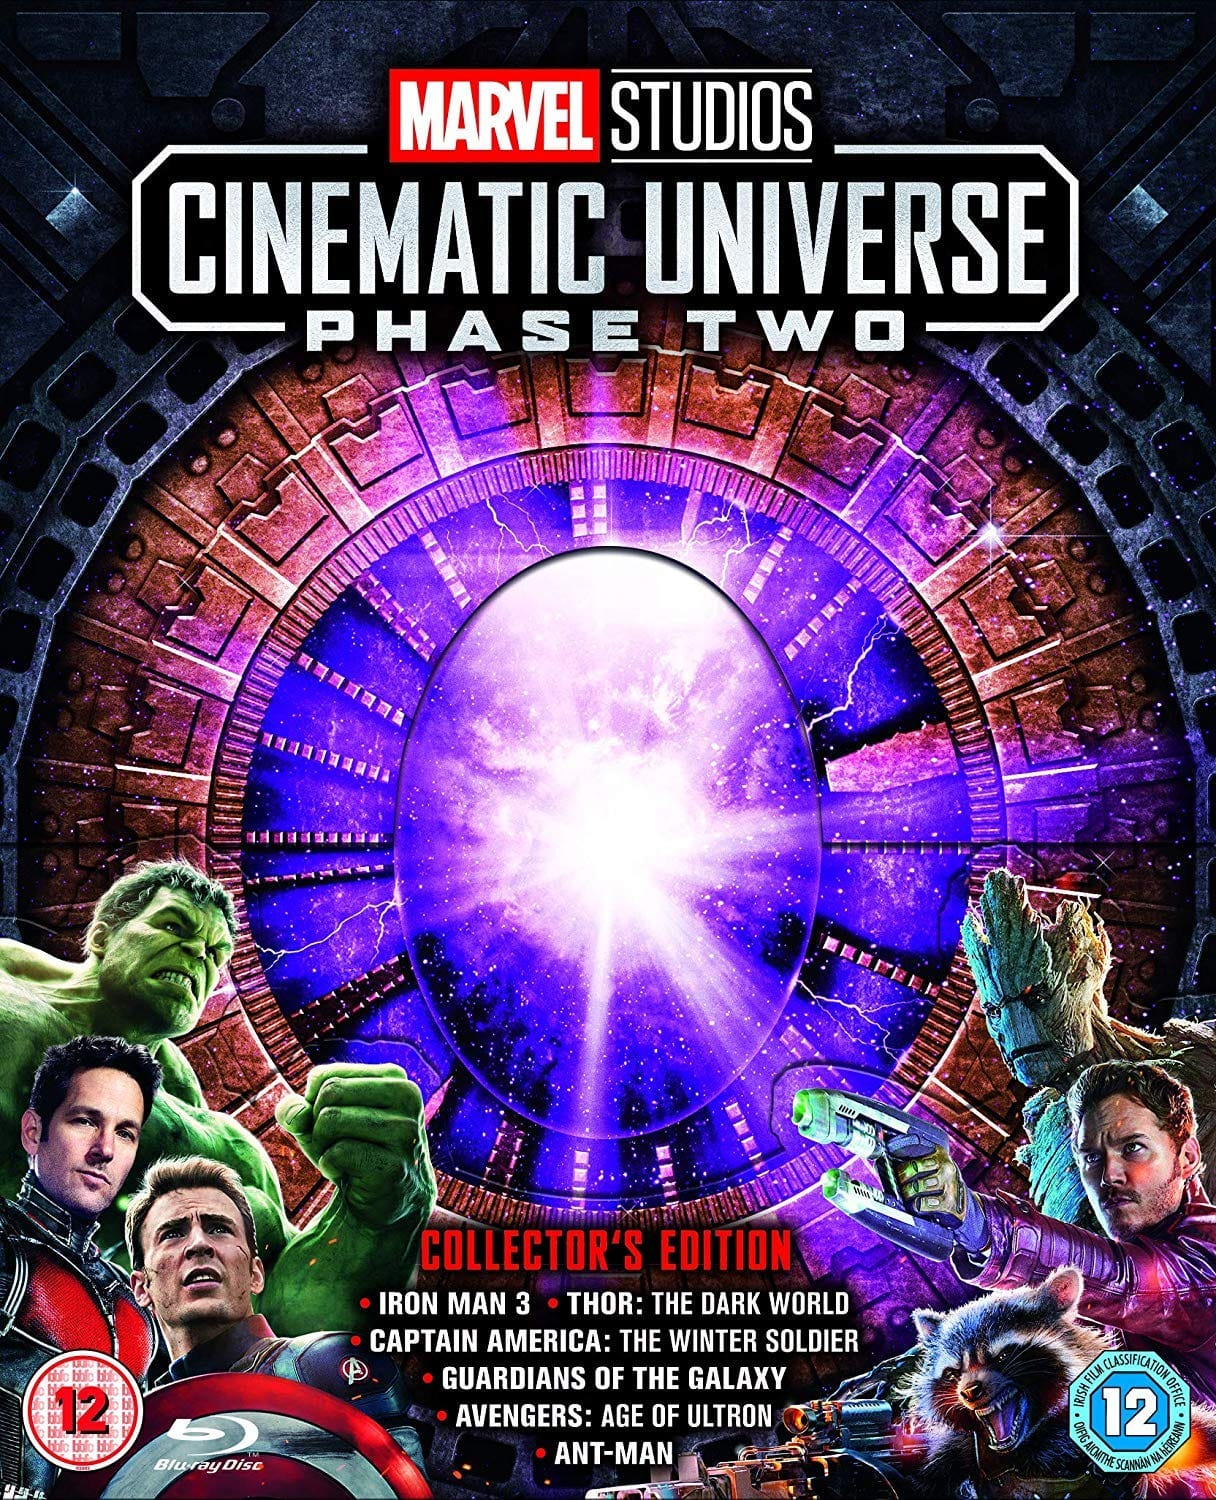 Marvel Studios Cinematic Collection Phase 2 Collector's Edition Blu-Ray $68.95